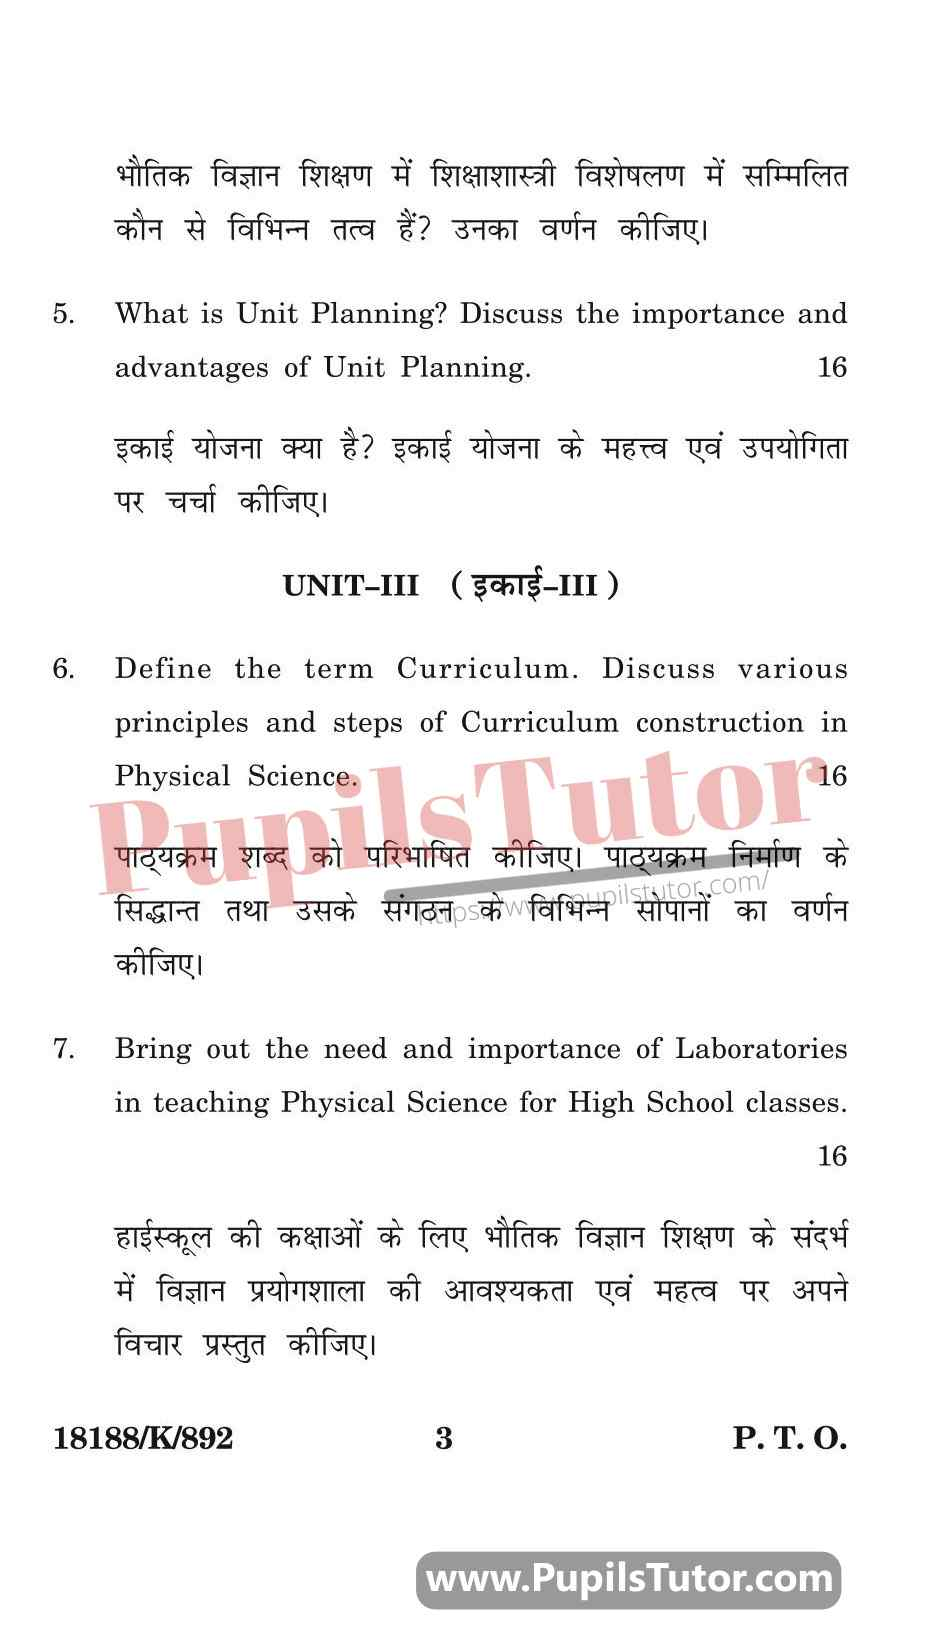 KUK (Kurukshetra University, Haryana) Pedagogy Of Physical Science Question Paper 2020 For B.Ed 1st And 2nd Year And All The 4 Semesters In English And Hindi Medium Free Download PDF - Page 3 - pupilstutor